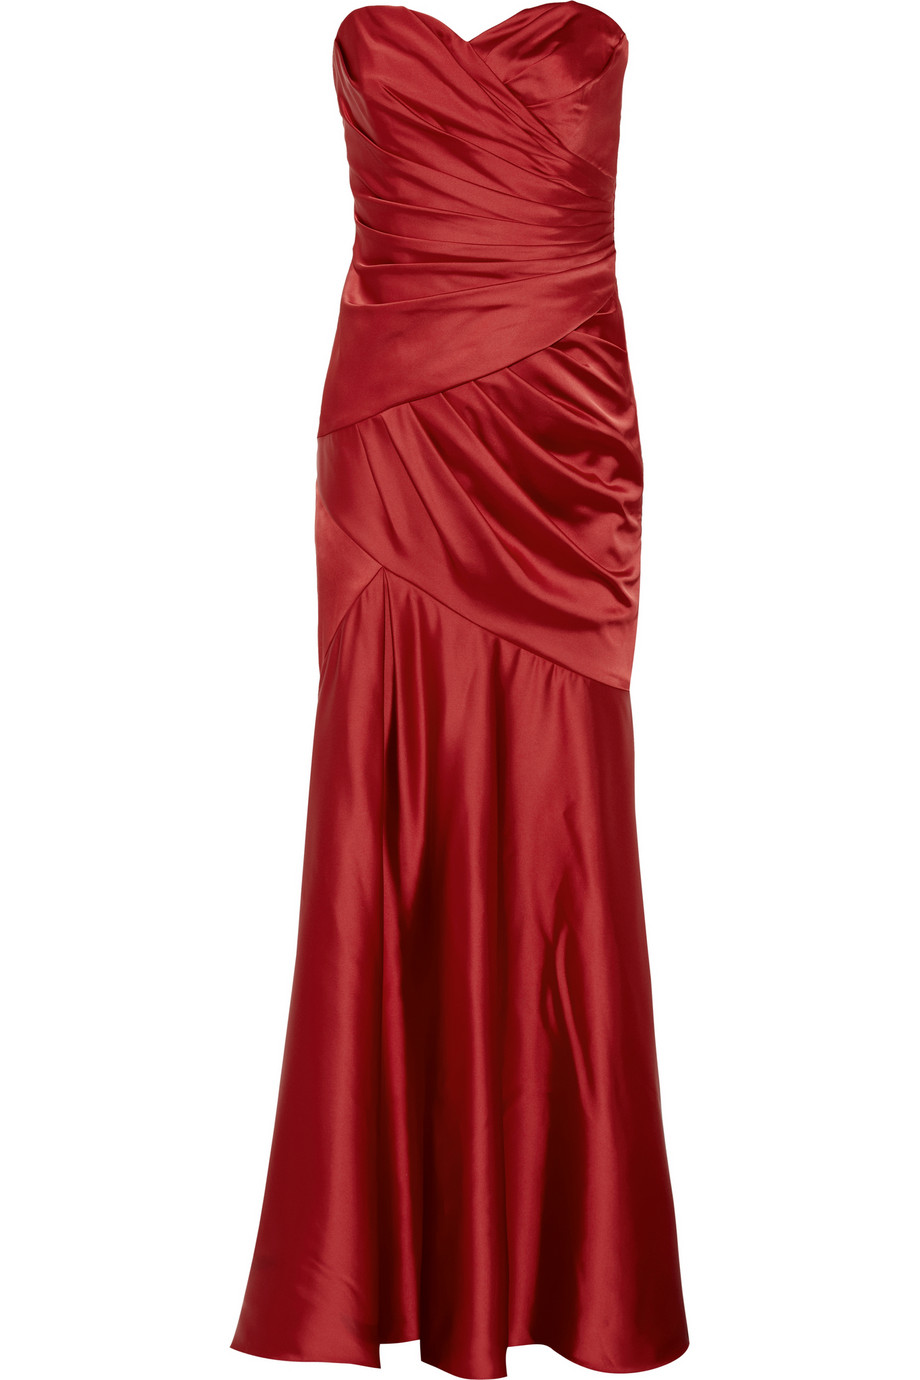 Notte by Marchesa Satin gown - 60% Off Now at THE OUTNET